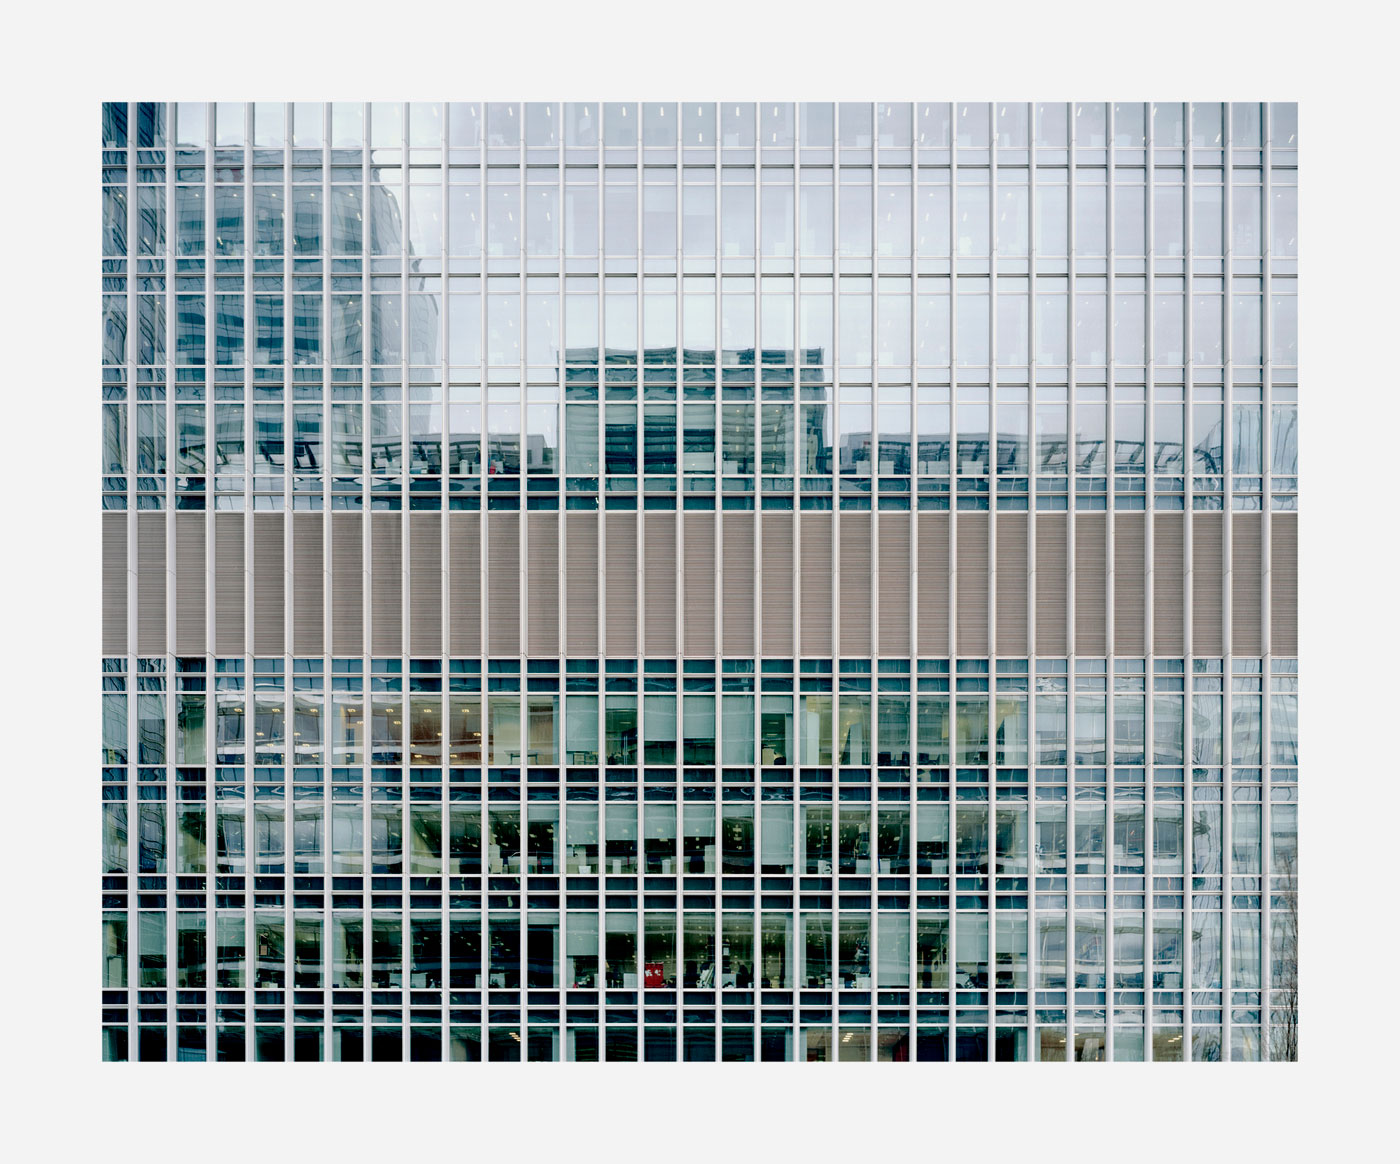 From the series 'Mapping the Zone', Canary Wharf, London, 2010